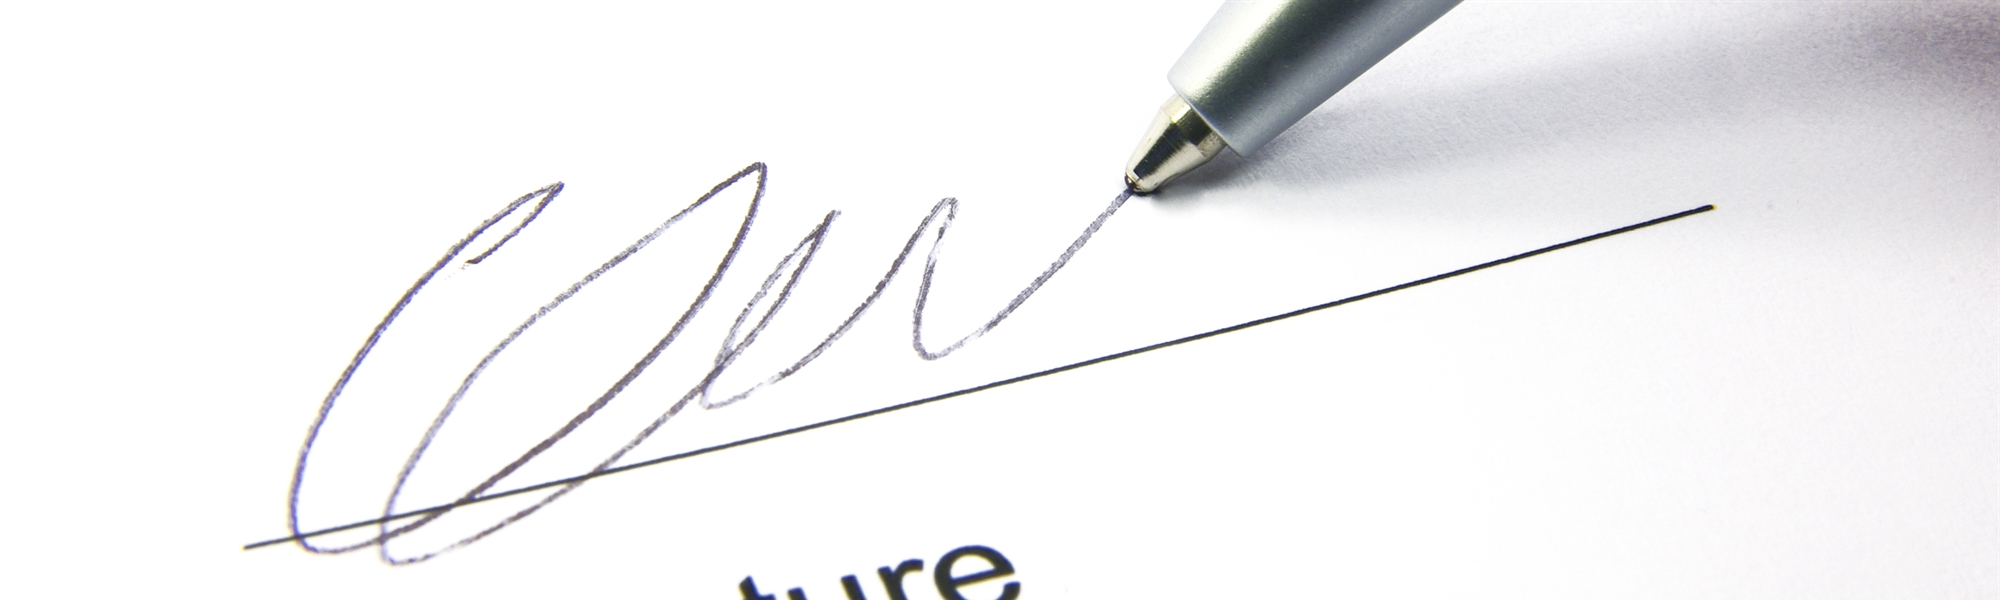 Execution of Documents - Why Does That Person Have to Sign?